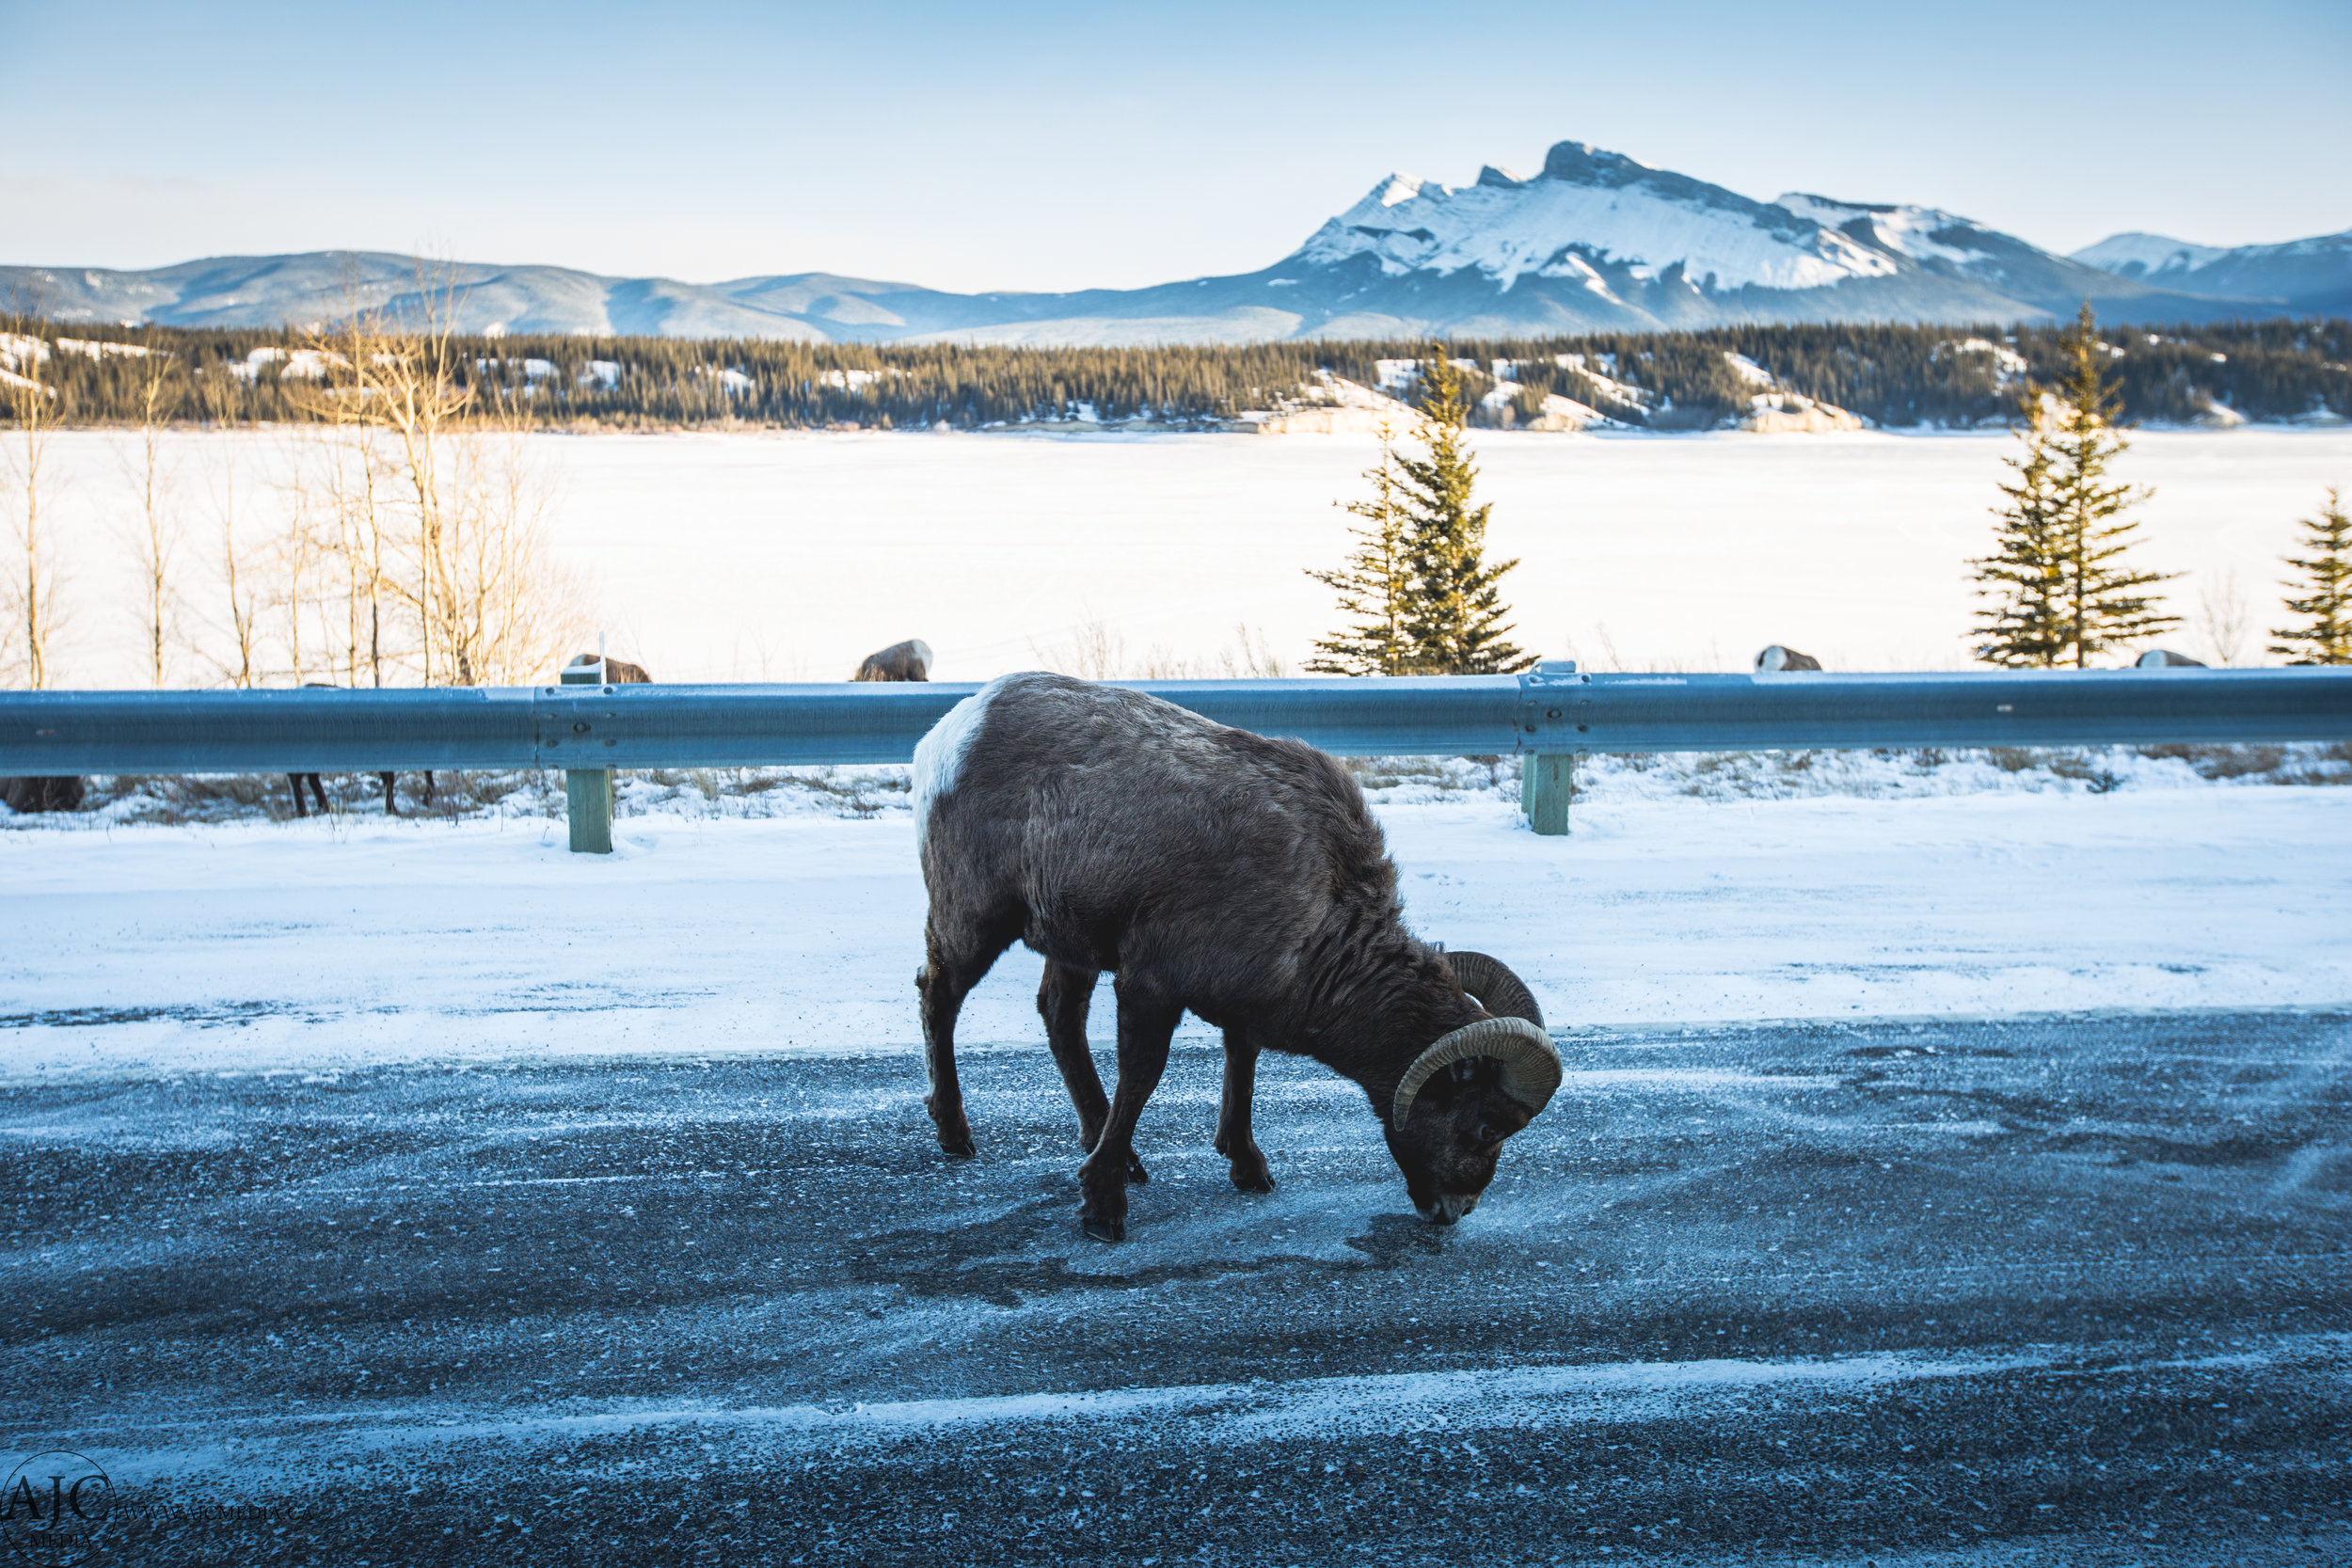 Finding salt during the winter comes down to licking the road...I'm glad I'm not a goat.